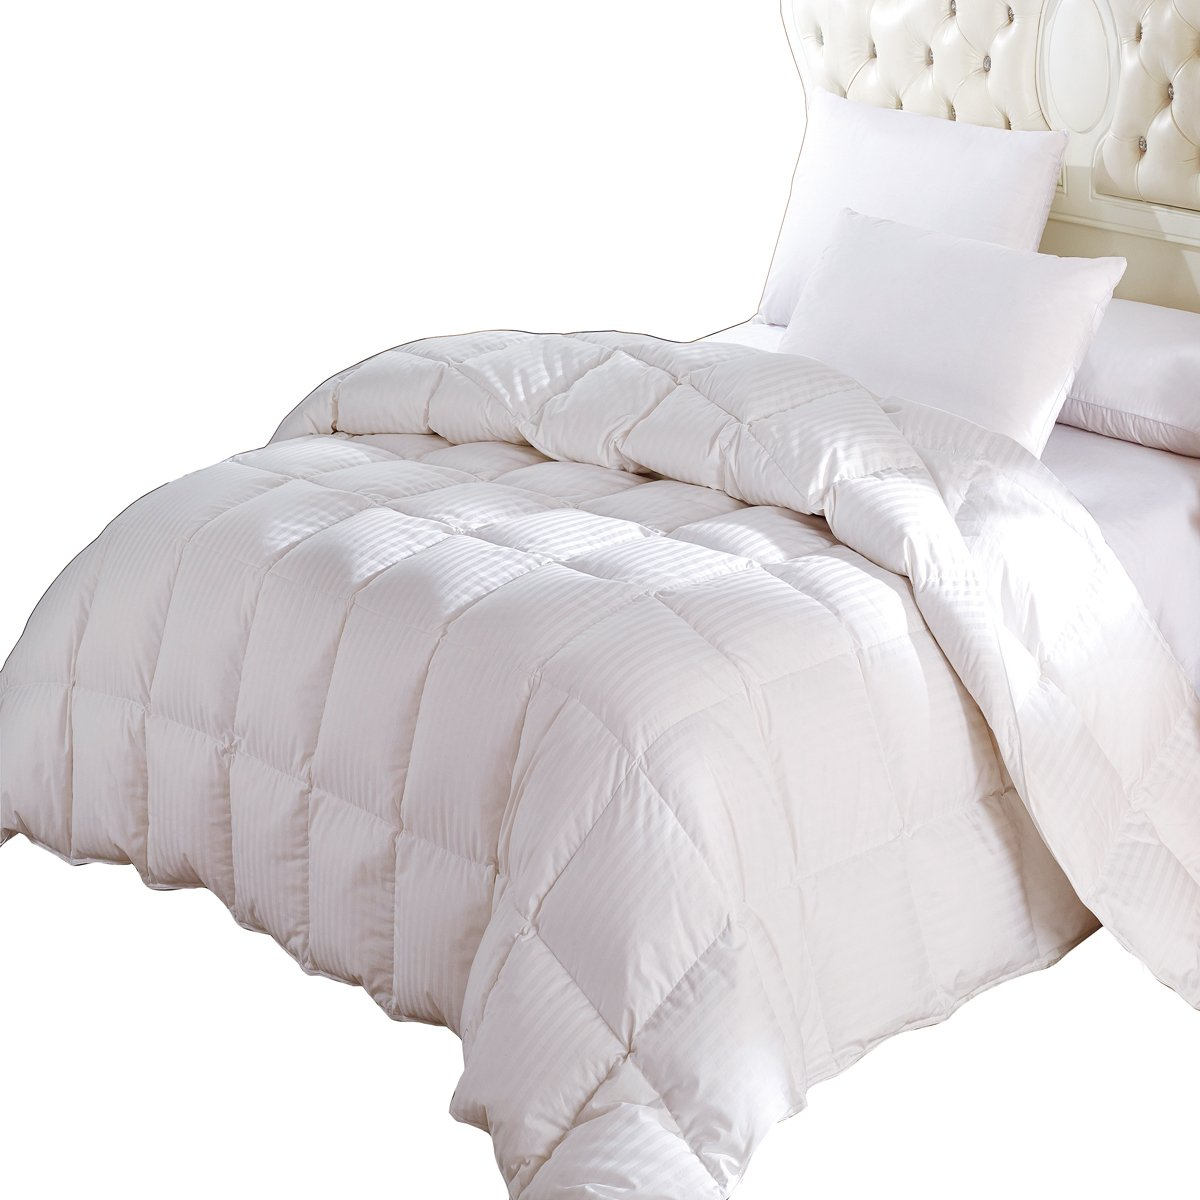 Royal Hotel King/Cal-king Size White Stripes Down-Comforter (Four Seasons) 300TC 100% Combed Cotton Cover